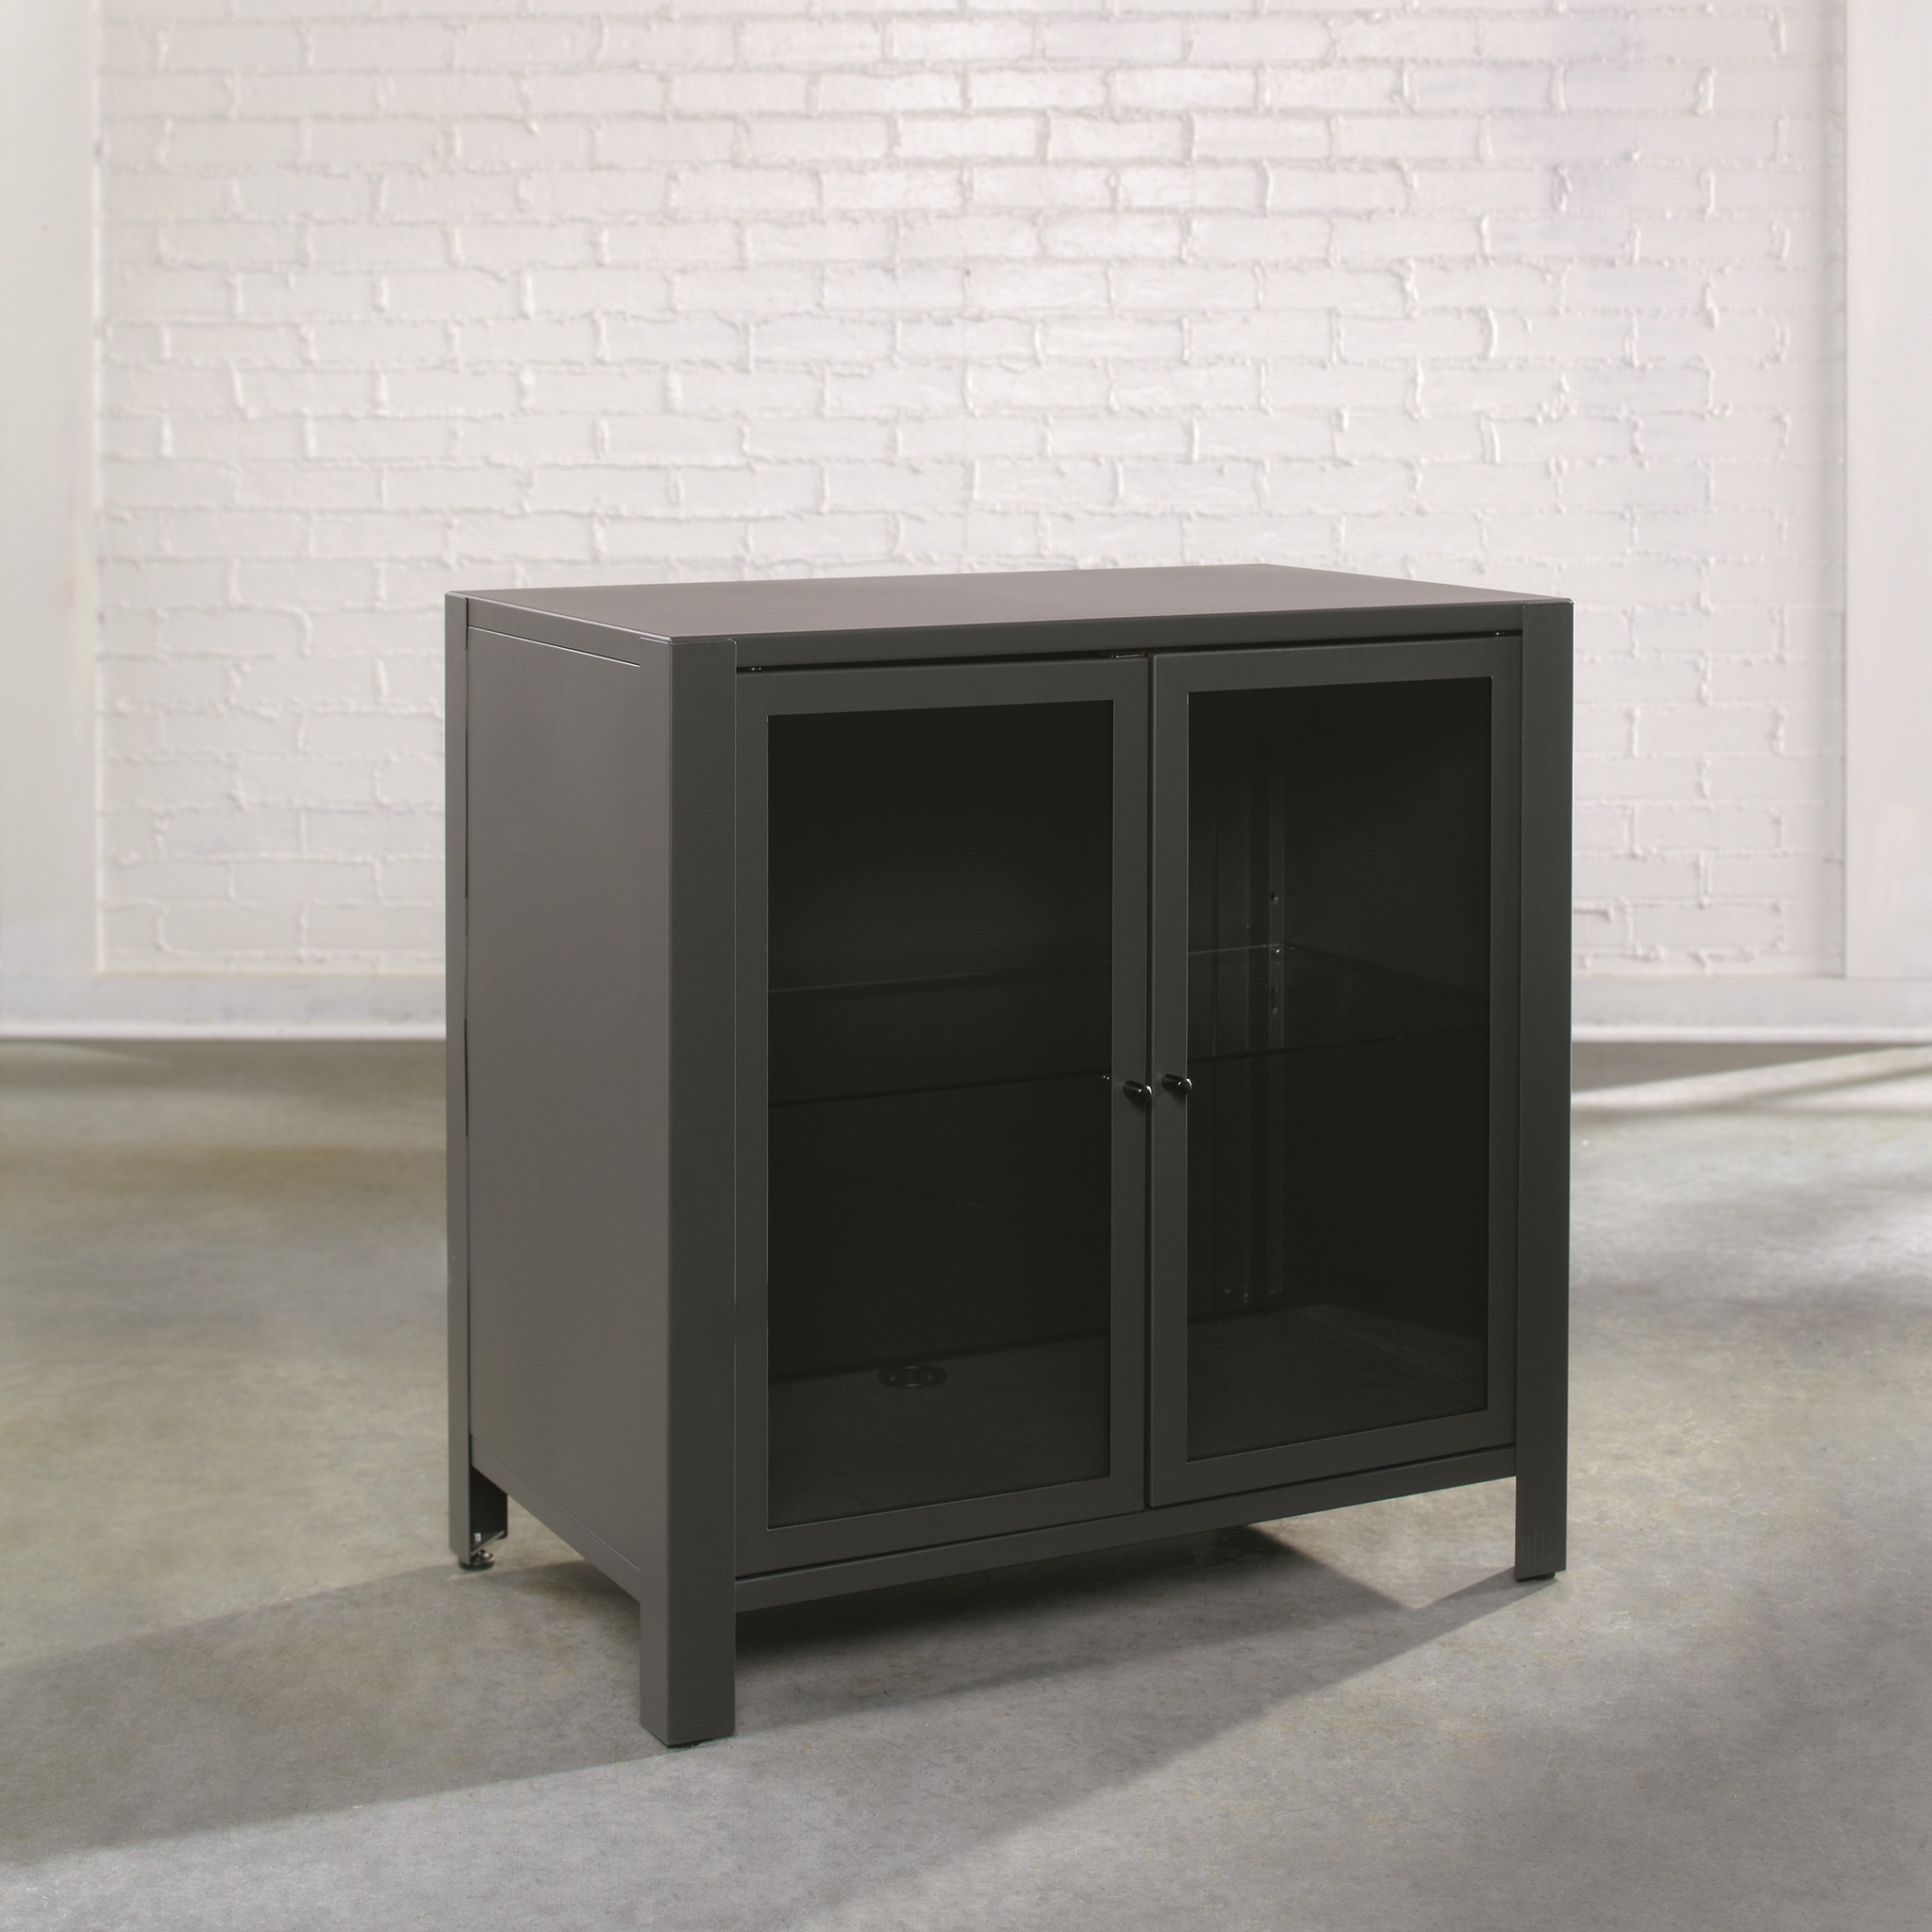 sauder tv stands menards tv stand sauder media storage - Sauder Tv Stands